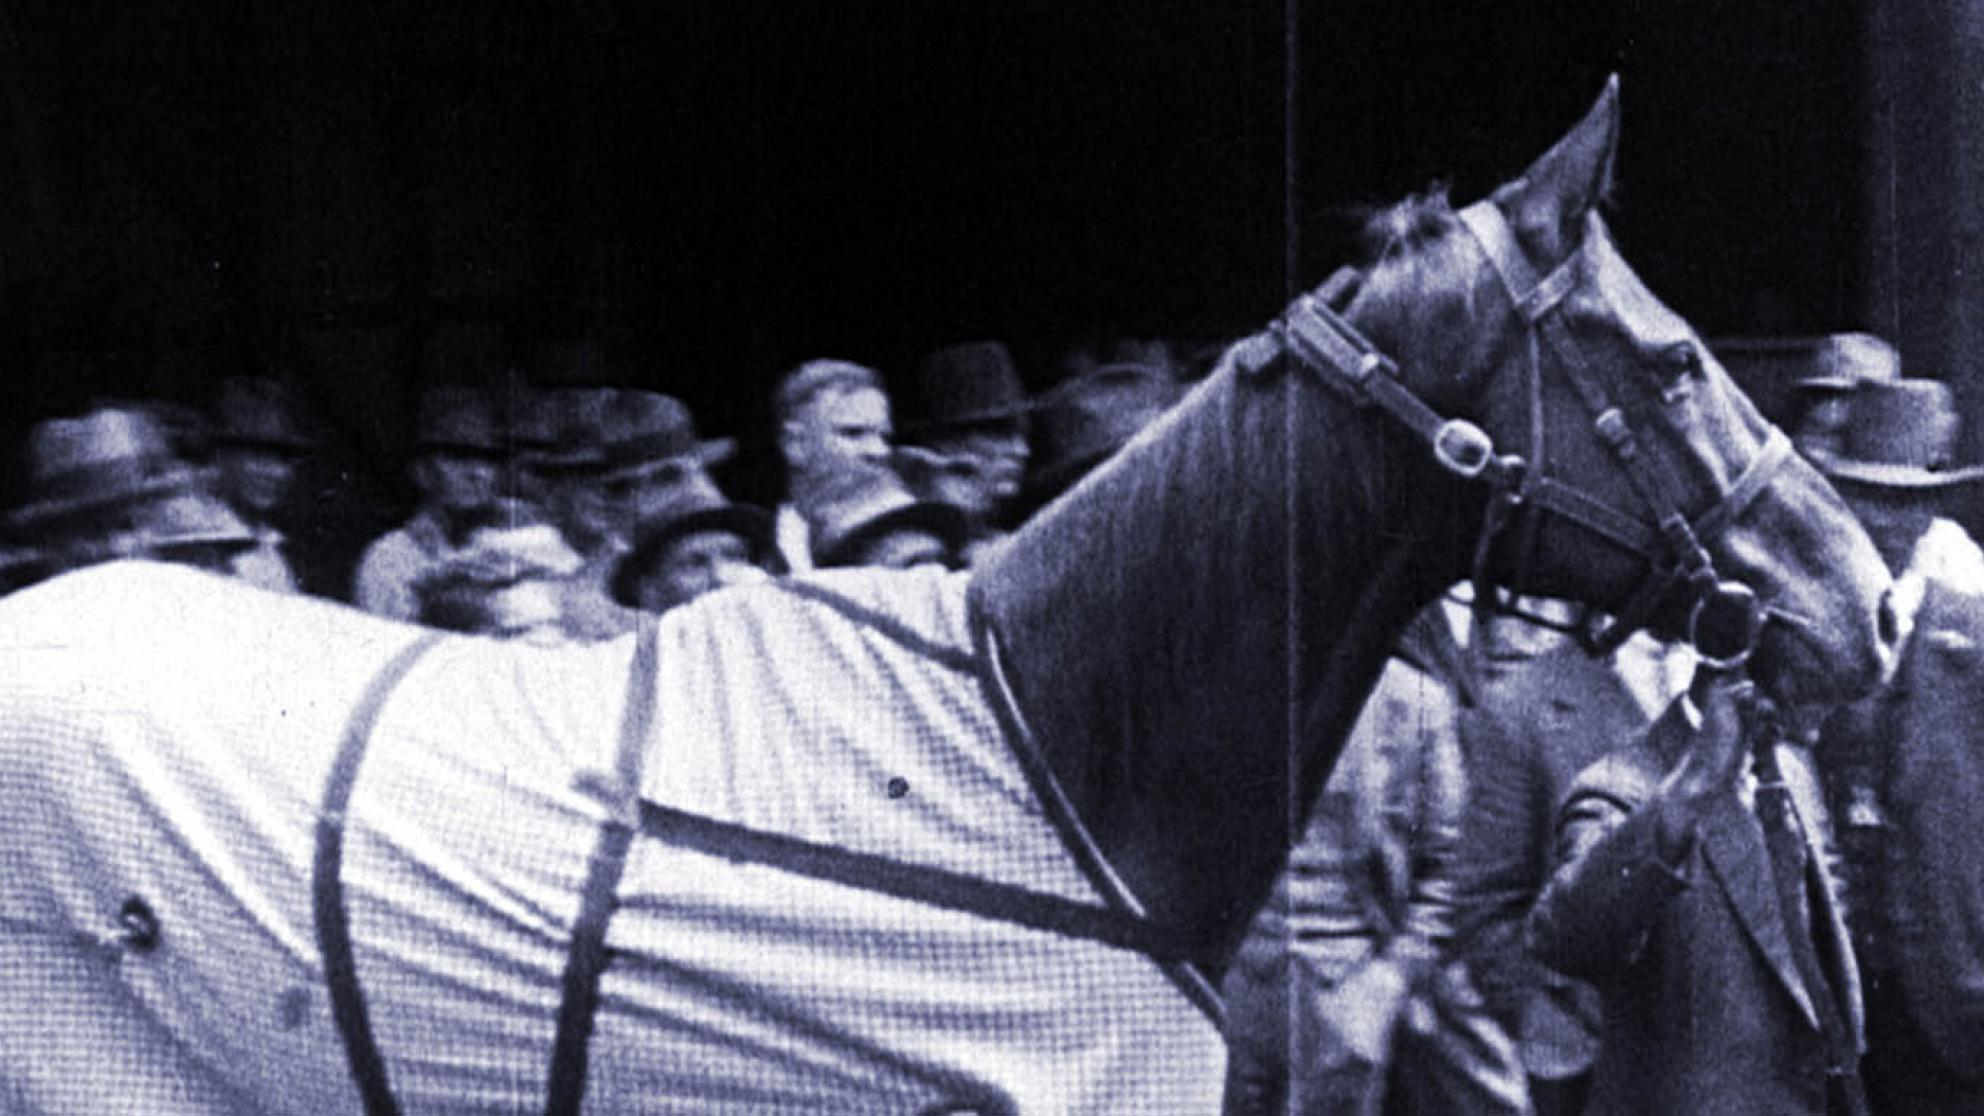 Horse Phar Lap is being led somewhere in a crowd of men in hats. He is wearing a horse rug around his middle.